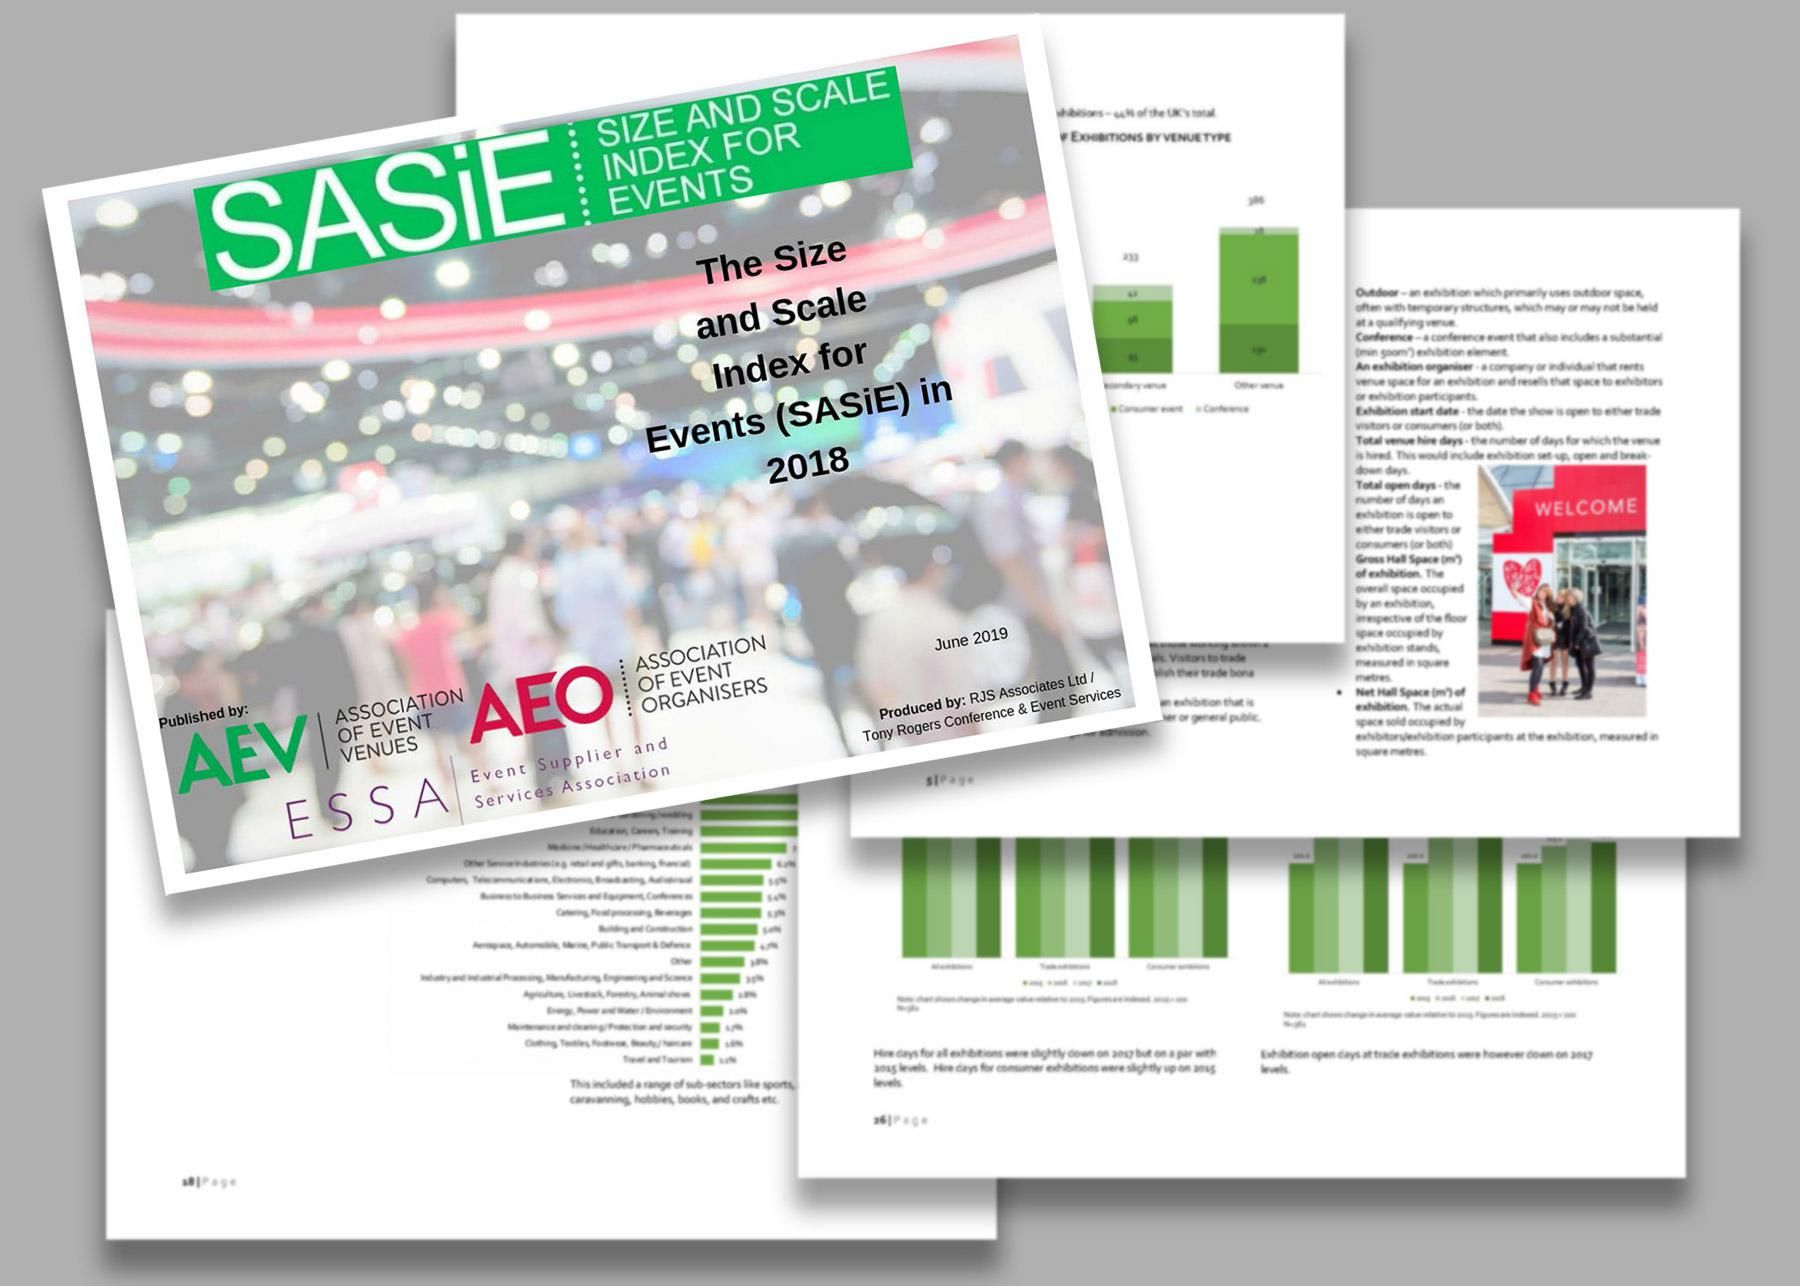 The 5th annual SASiE, shows year-on-year comparisons across key event industry metrics and including detailed trends, analysis and insights from the organiser and supplier sectors, presented by Philip Soar, CEO and executive chairman of CloserStill, and Nick Marshall, executive chairman of GES, respectively.